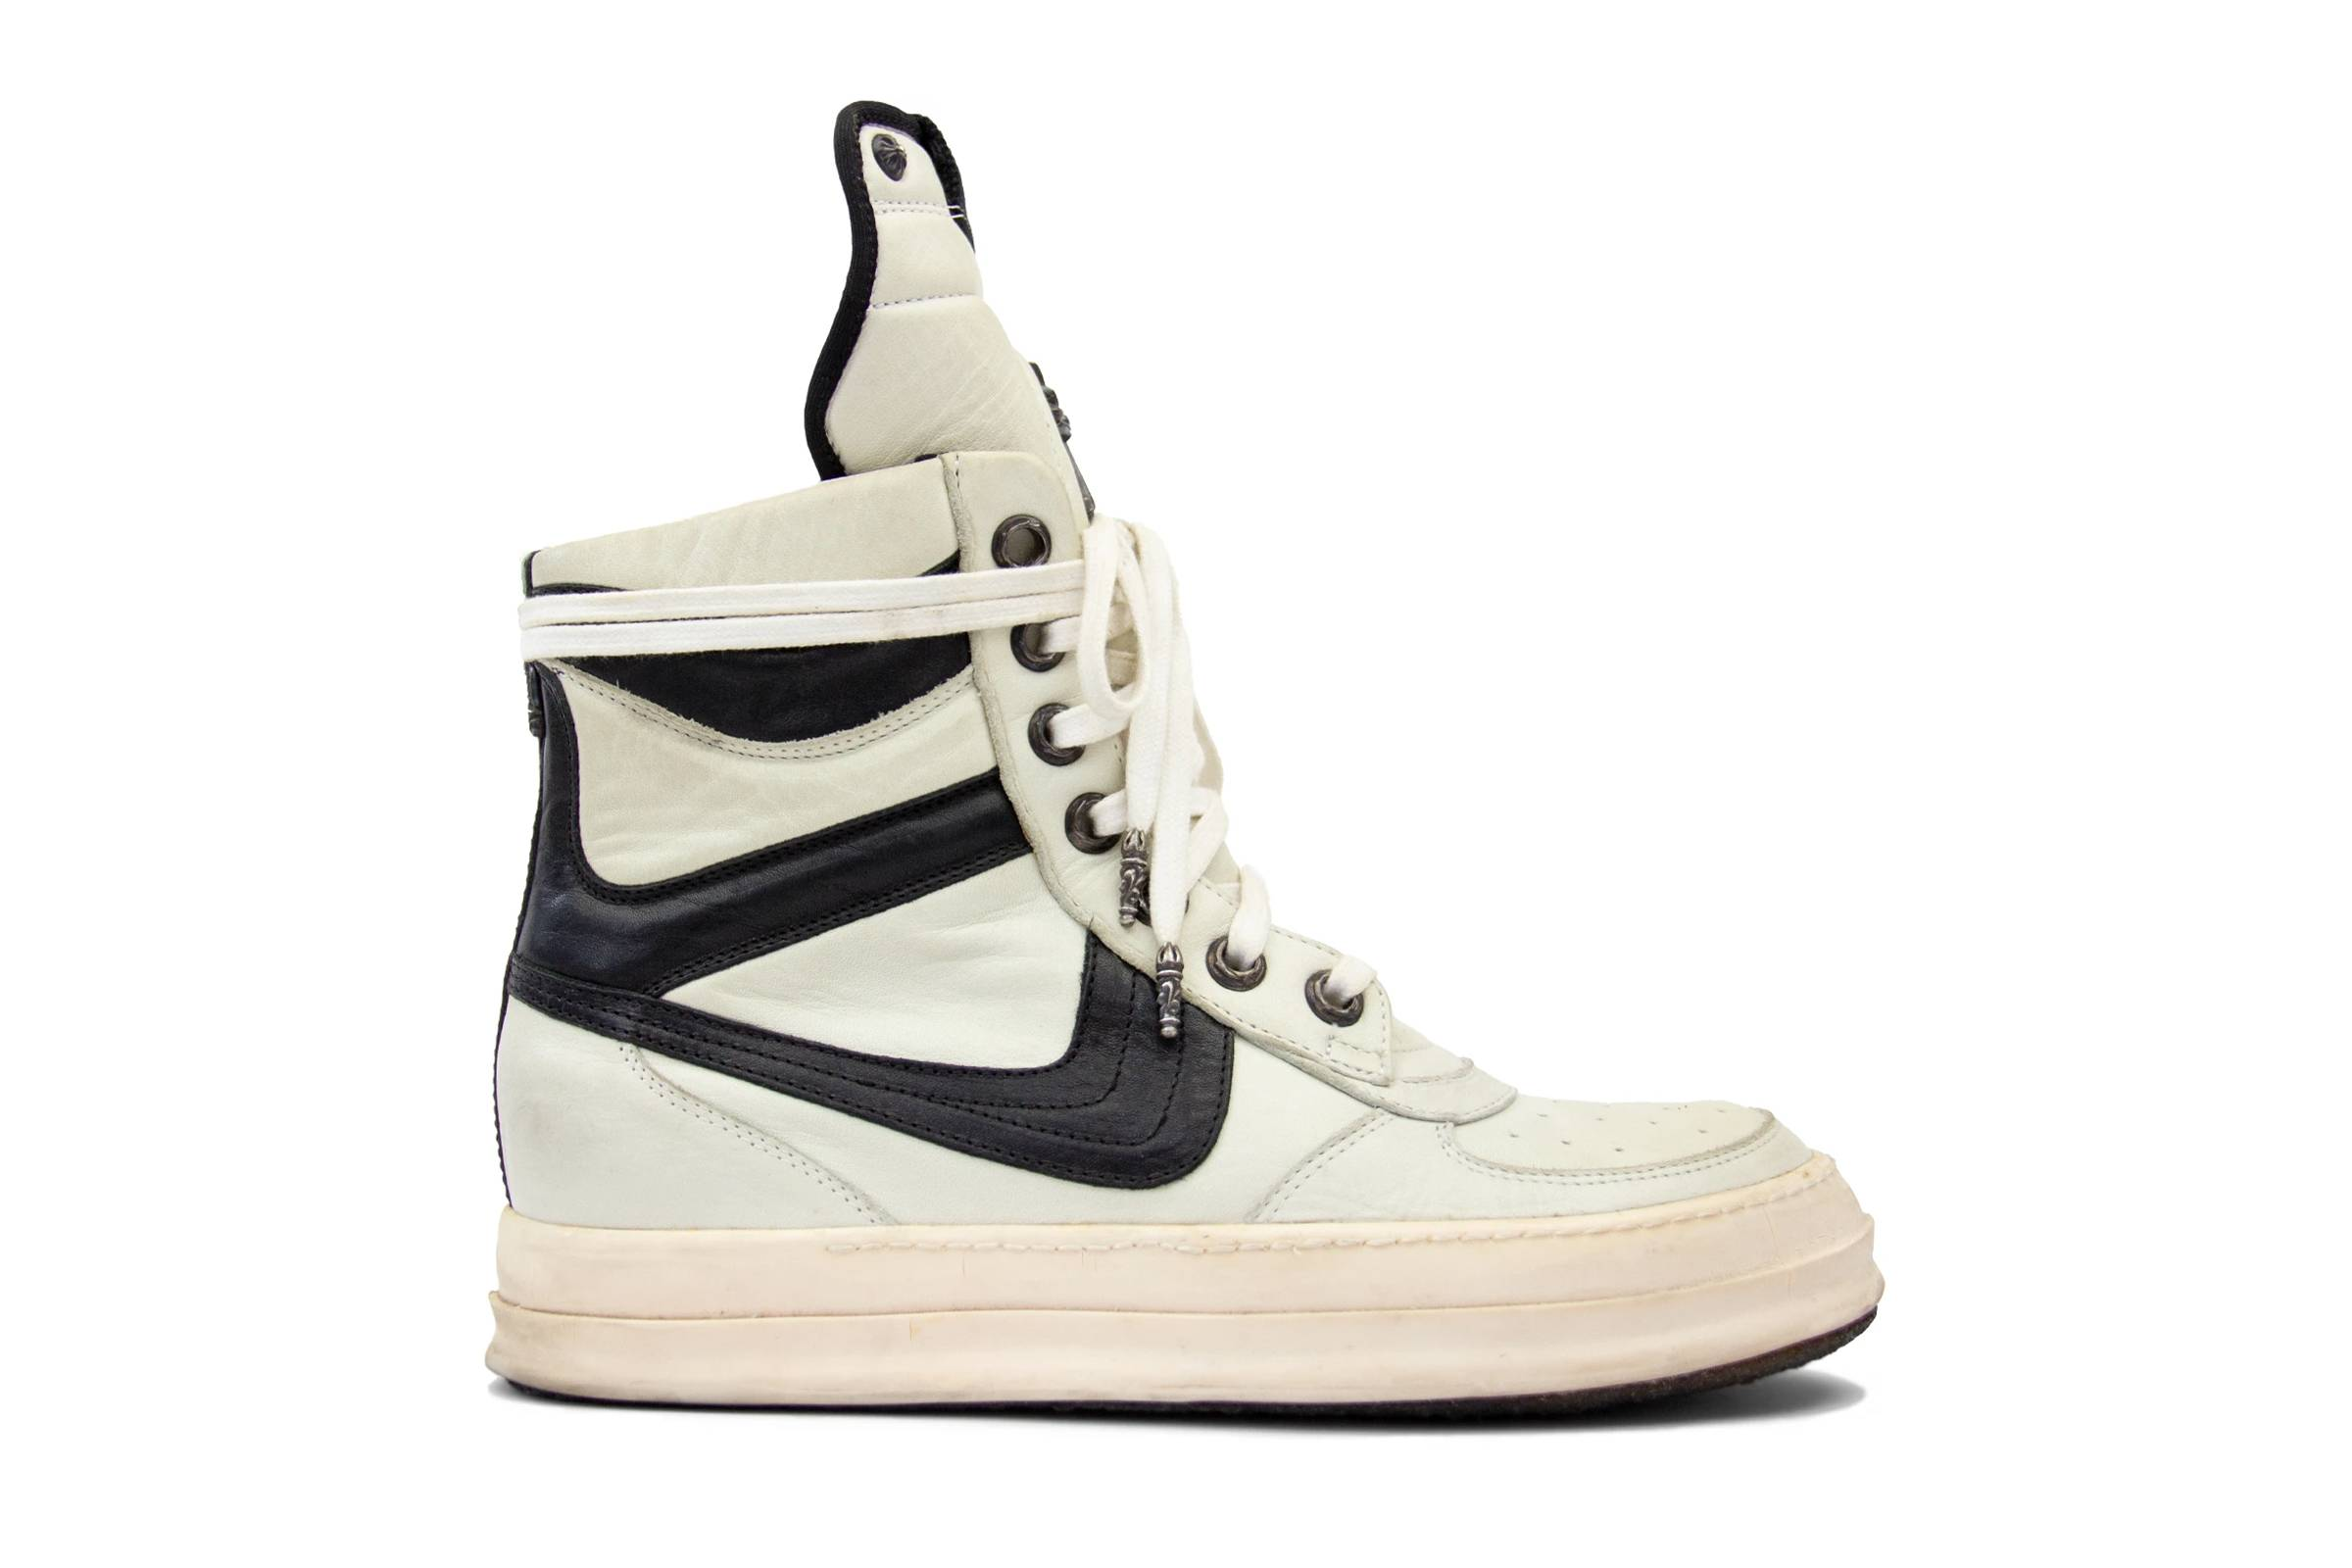 Chrome Hearts x Rick Owens Dunks